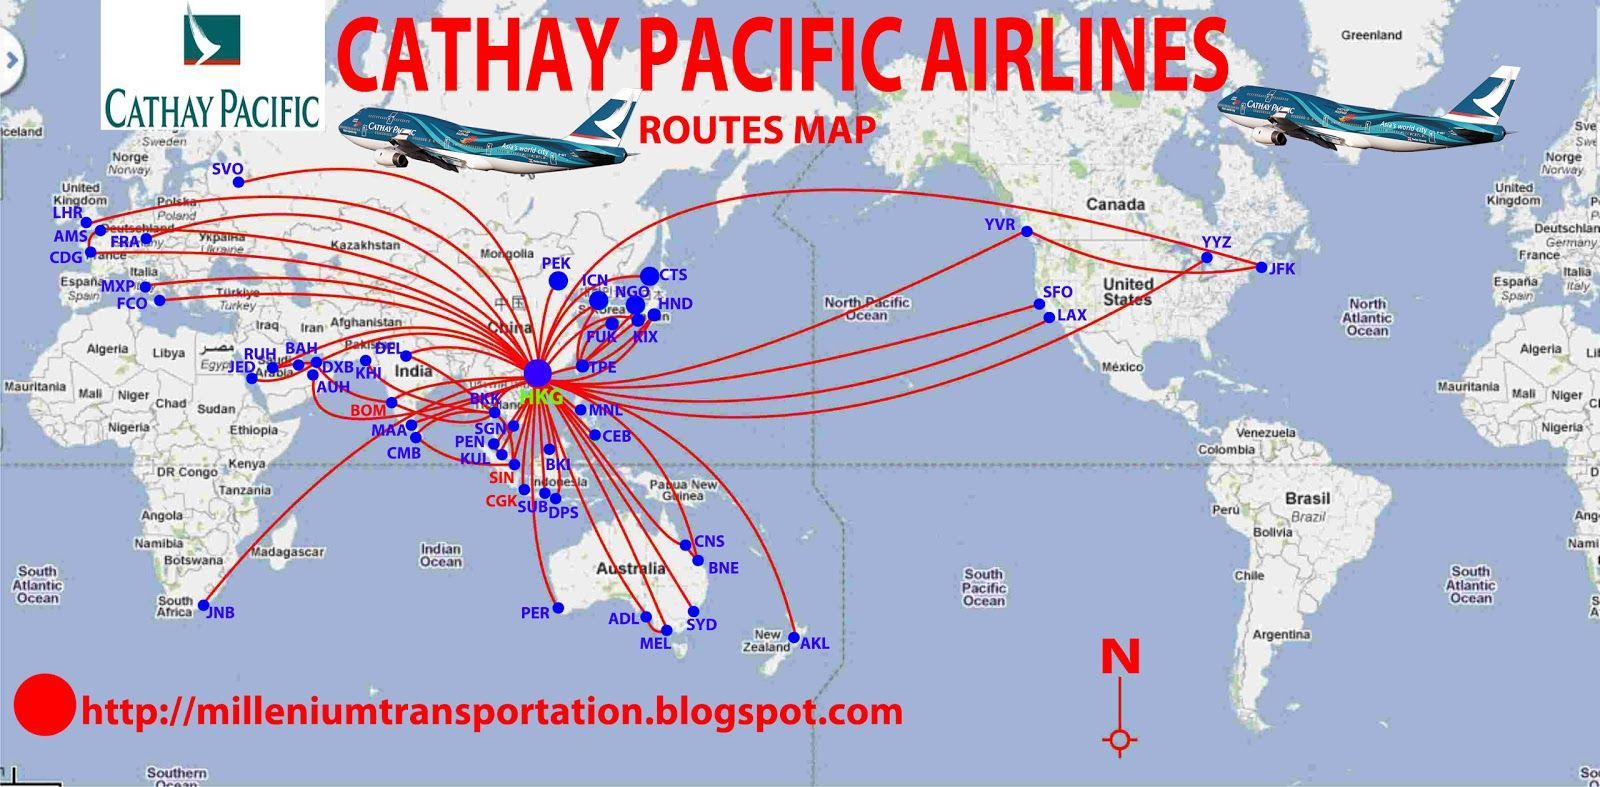 Cathay Pacific route map Route map, Cathay pacific, Route